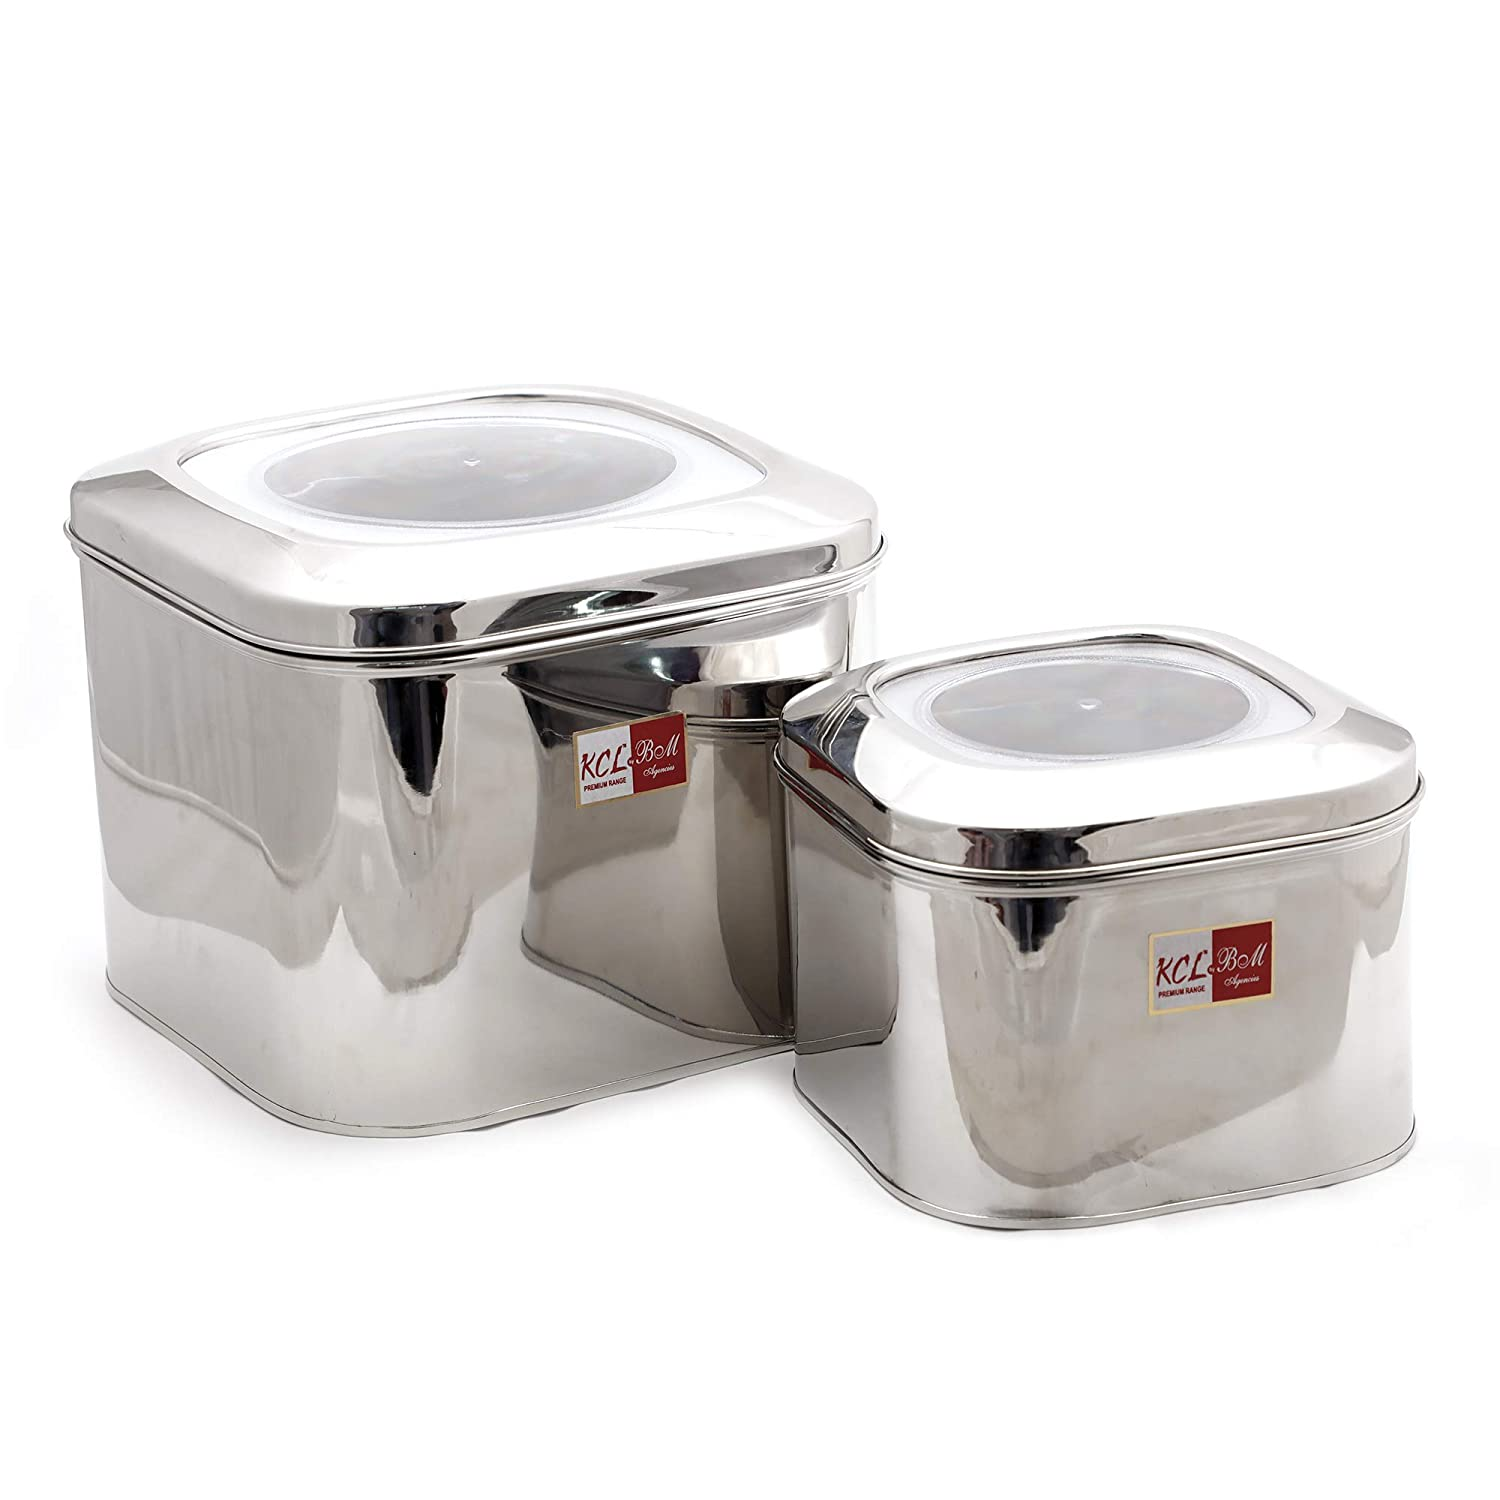 57eb250be01 Buy KCL Stainless Steel Cubic Tin with Unbreakable Lid for Dry Grains  Storage - Set of 2 - Capacity 4.5KG   2.5KG Online at Low Prices in India -  Amazon.in